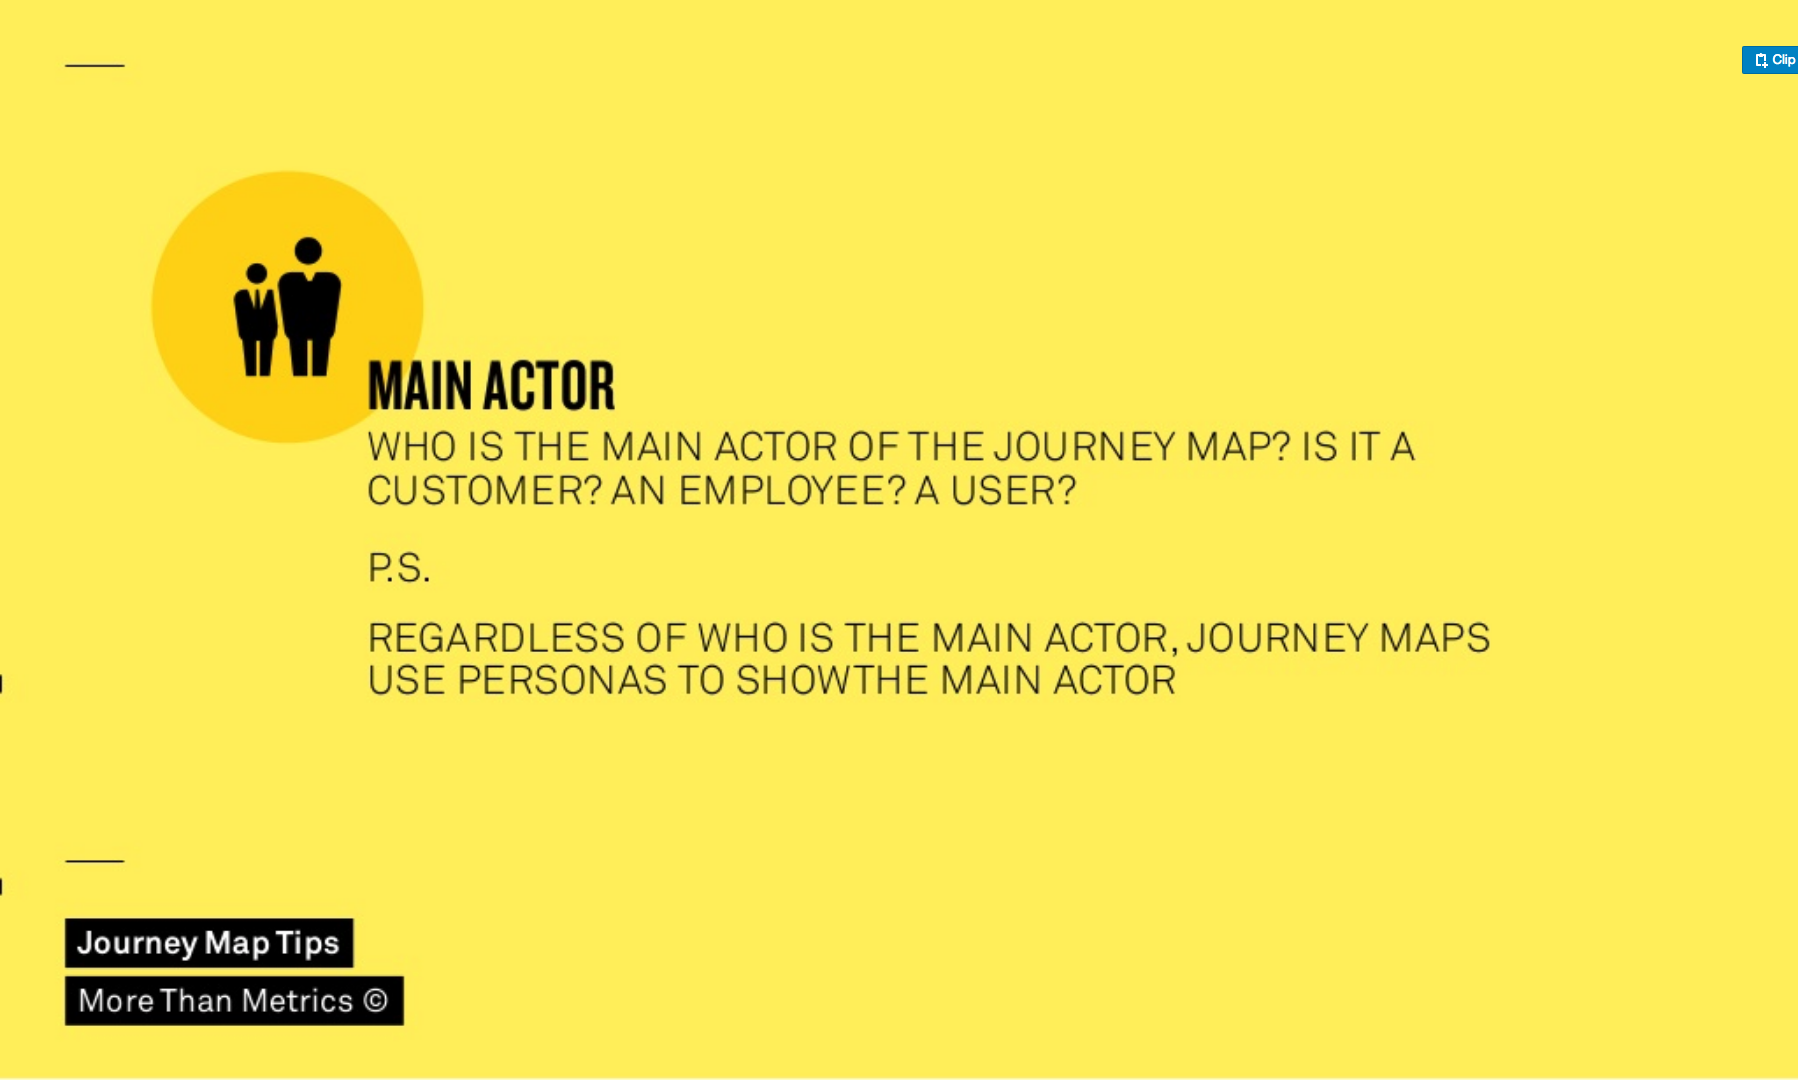 The main actor of a journey map can be a customer, an employee or e user and  is always represented by a persona.